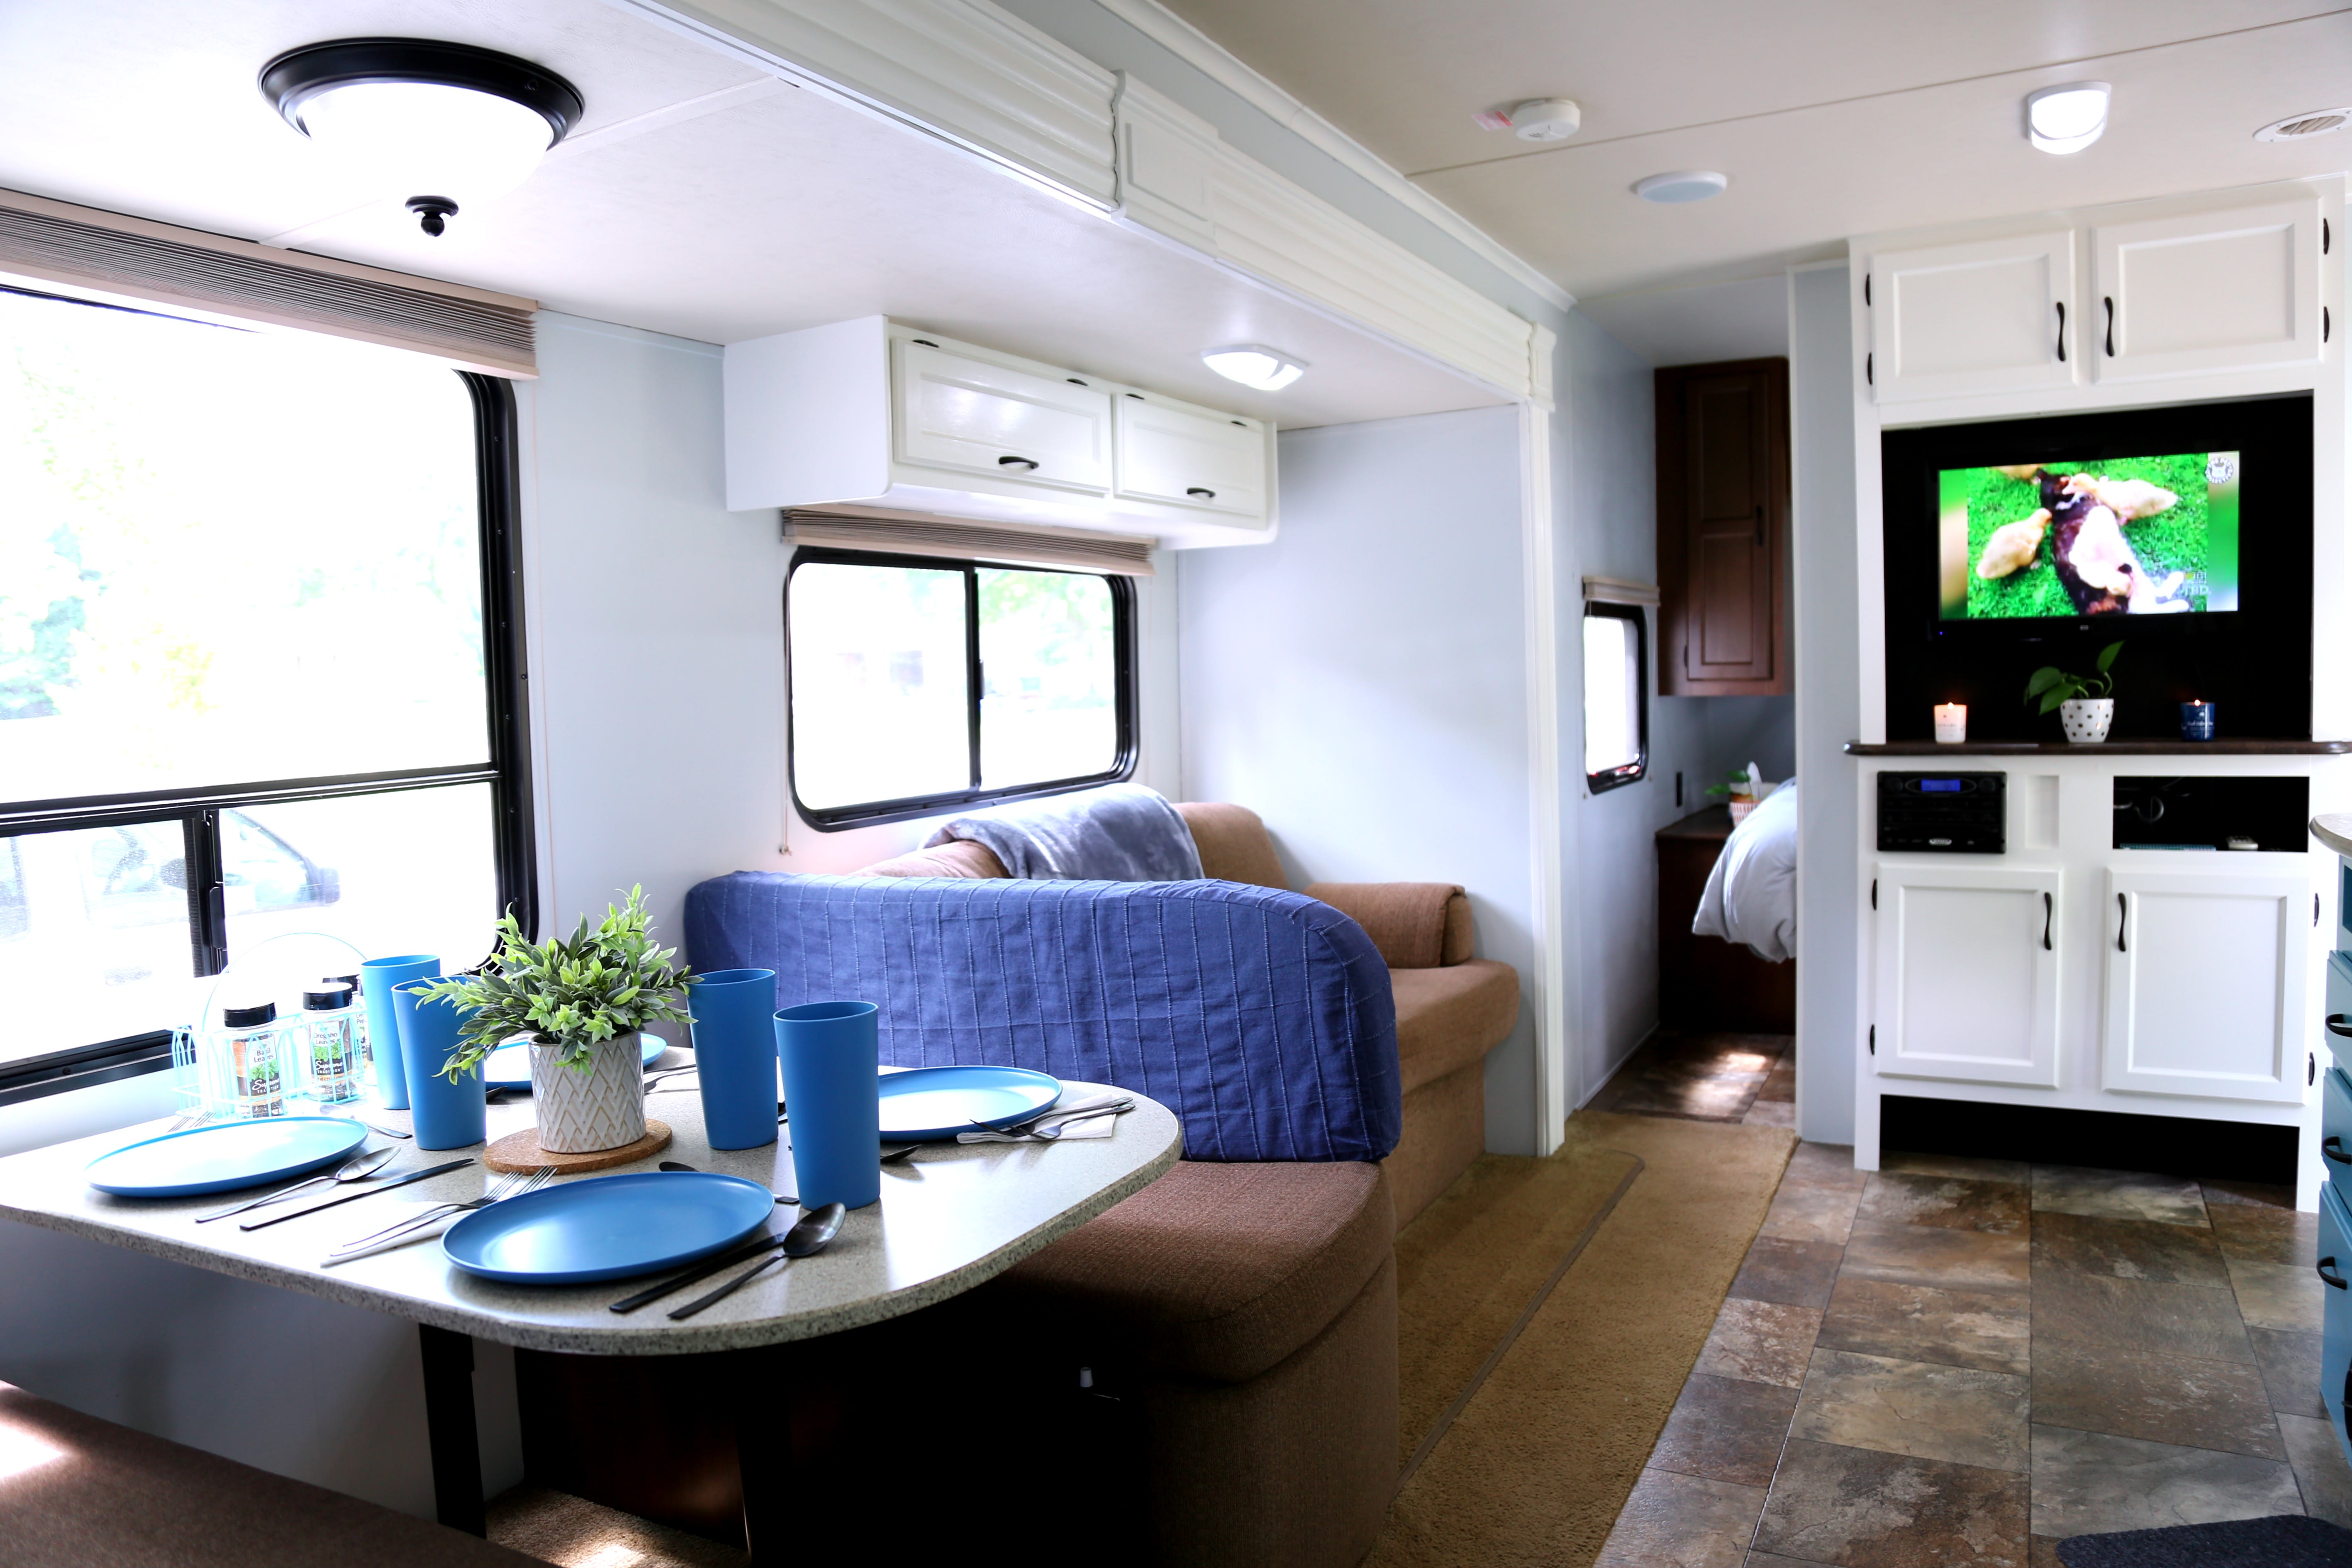 New 2020 renovations include a bright new paint job.. Jayco Camper Trailer- Swift 2014